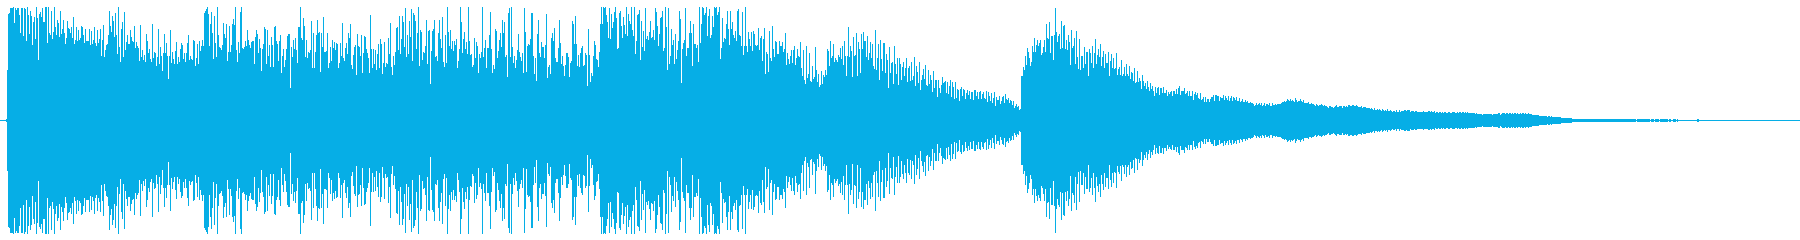 Created with sound logo and piano solo's reproduced waveform